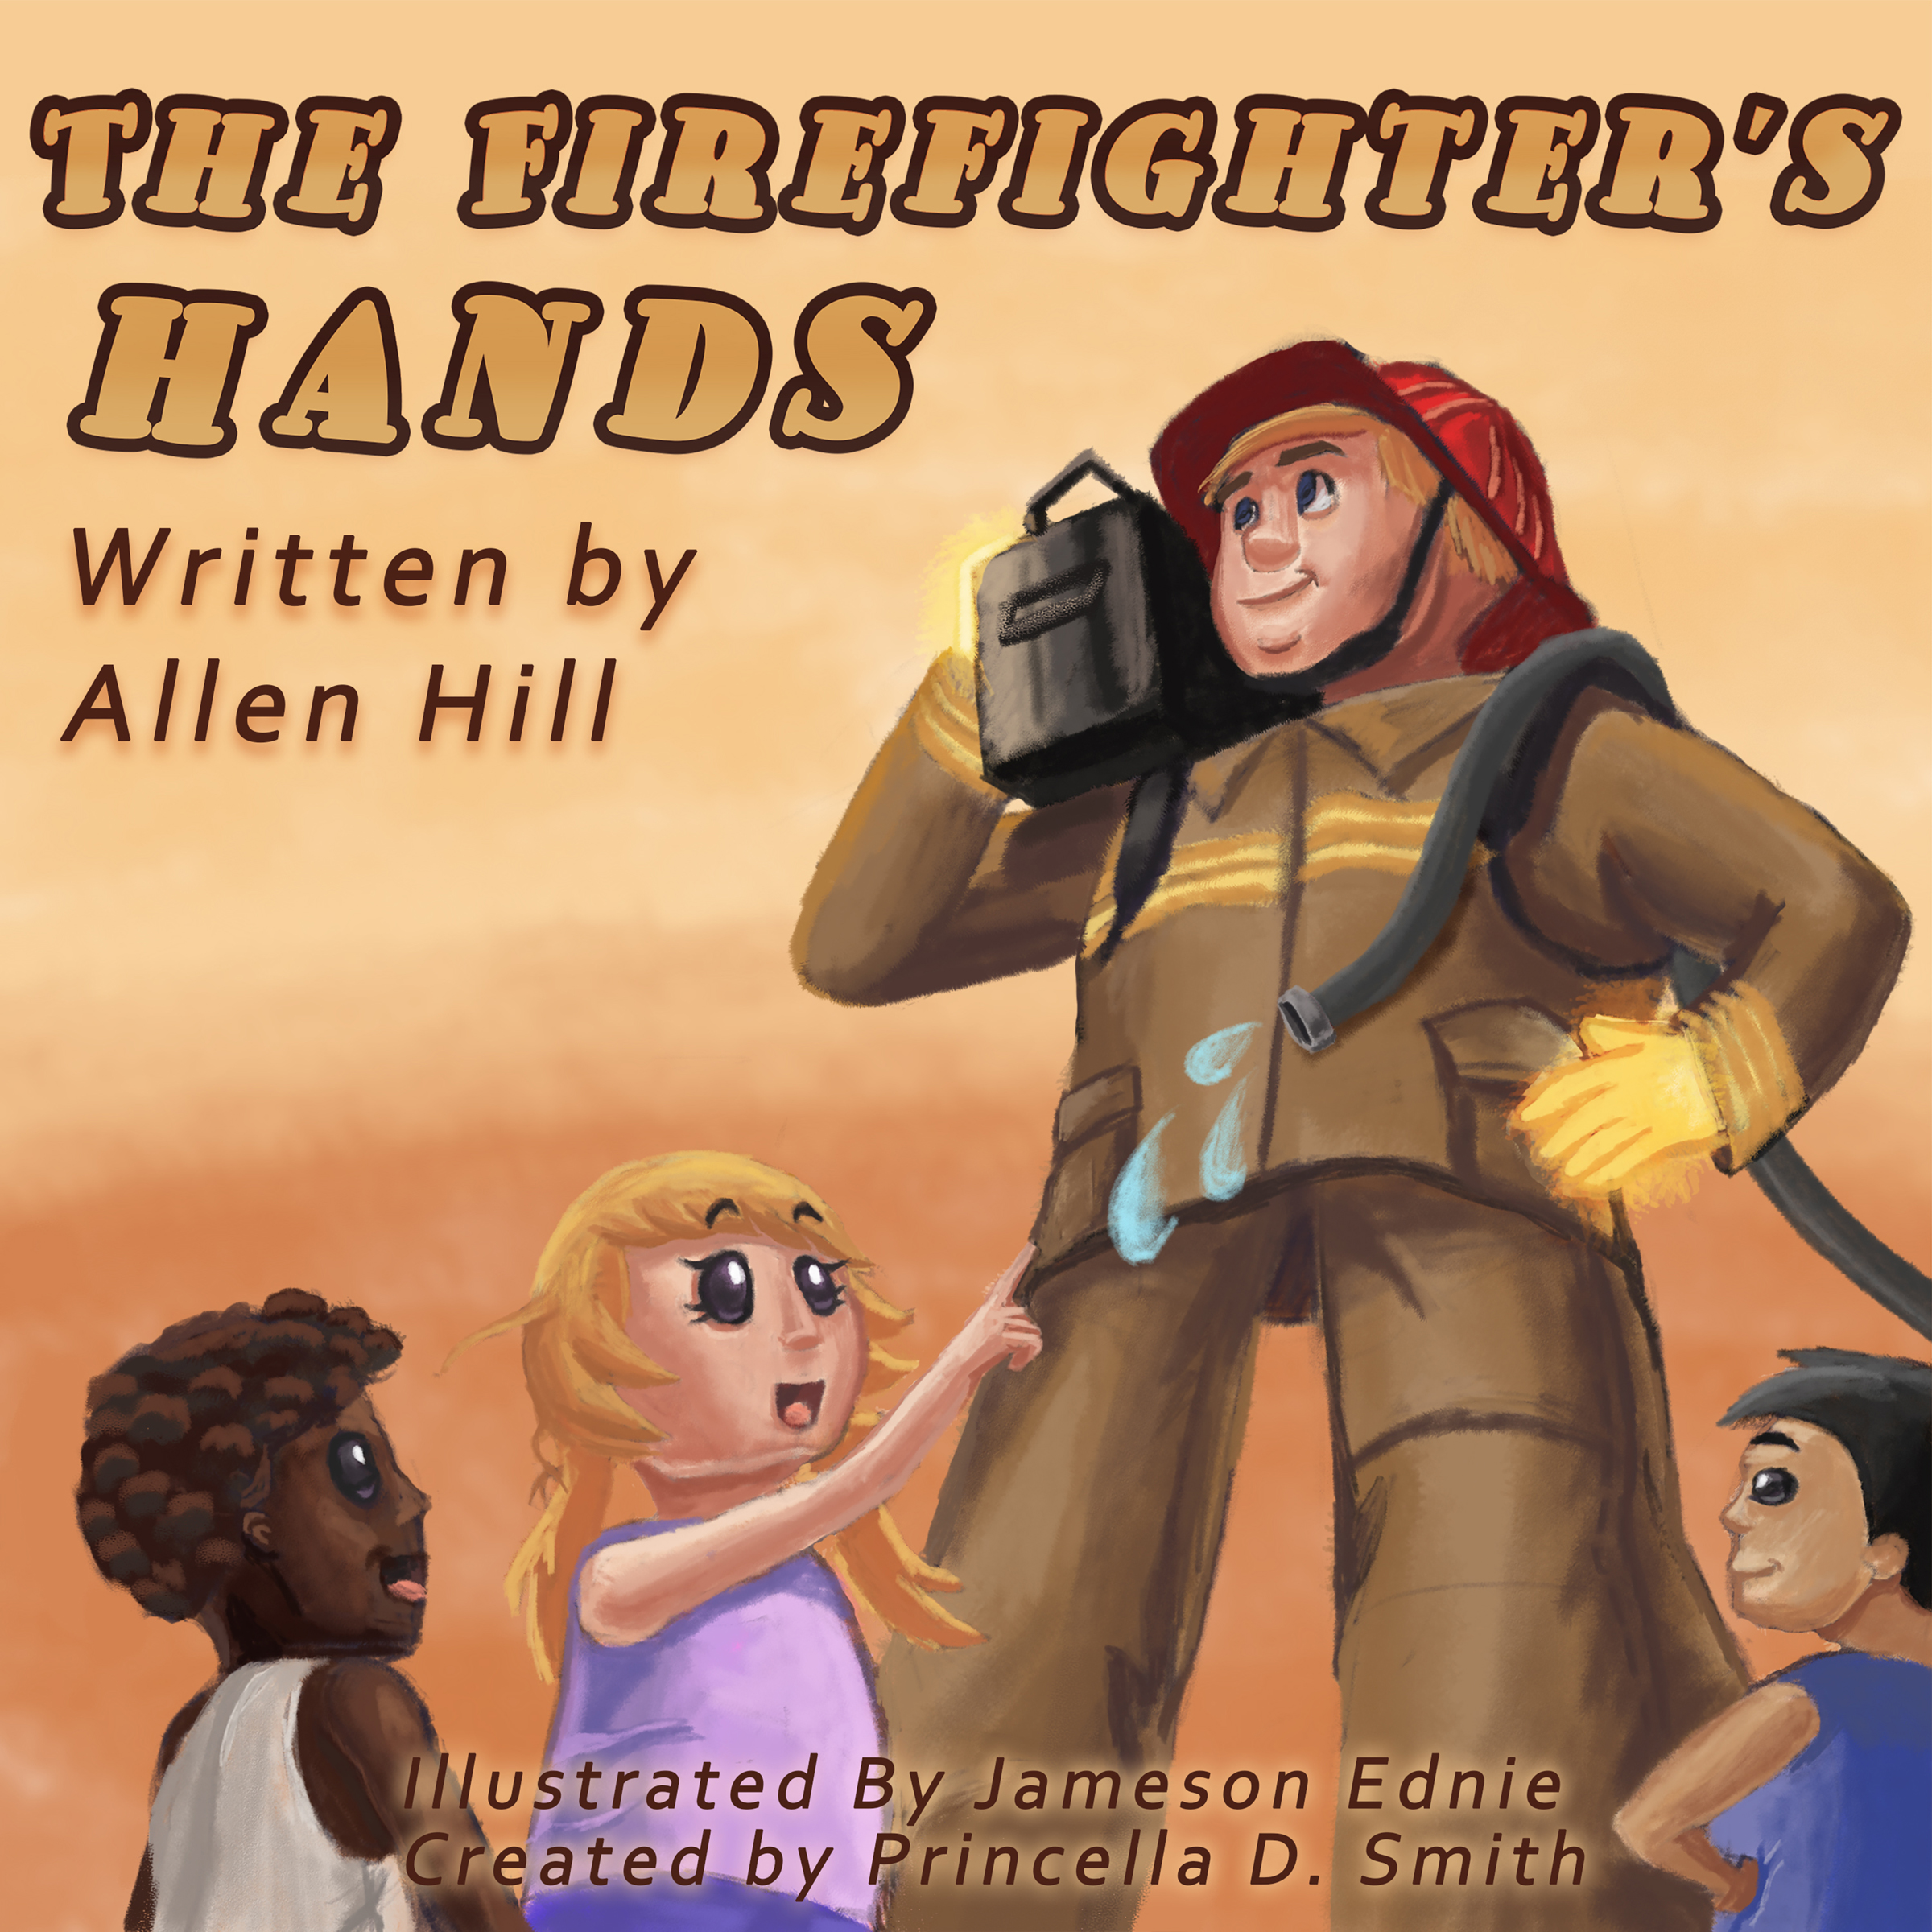 The Firefighter's Hands